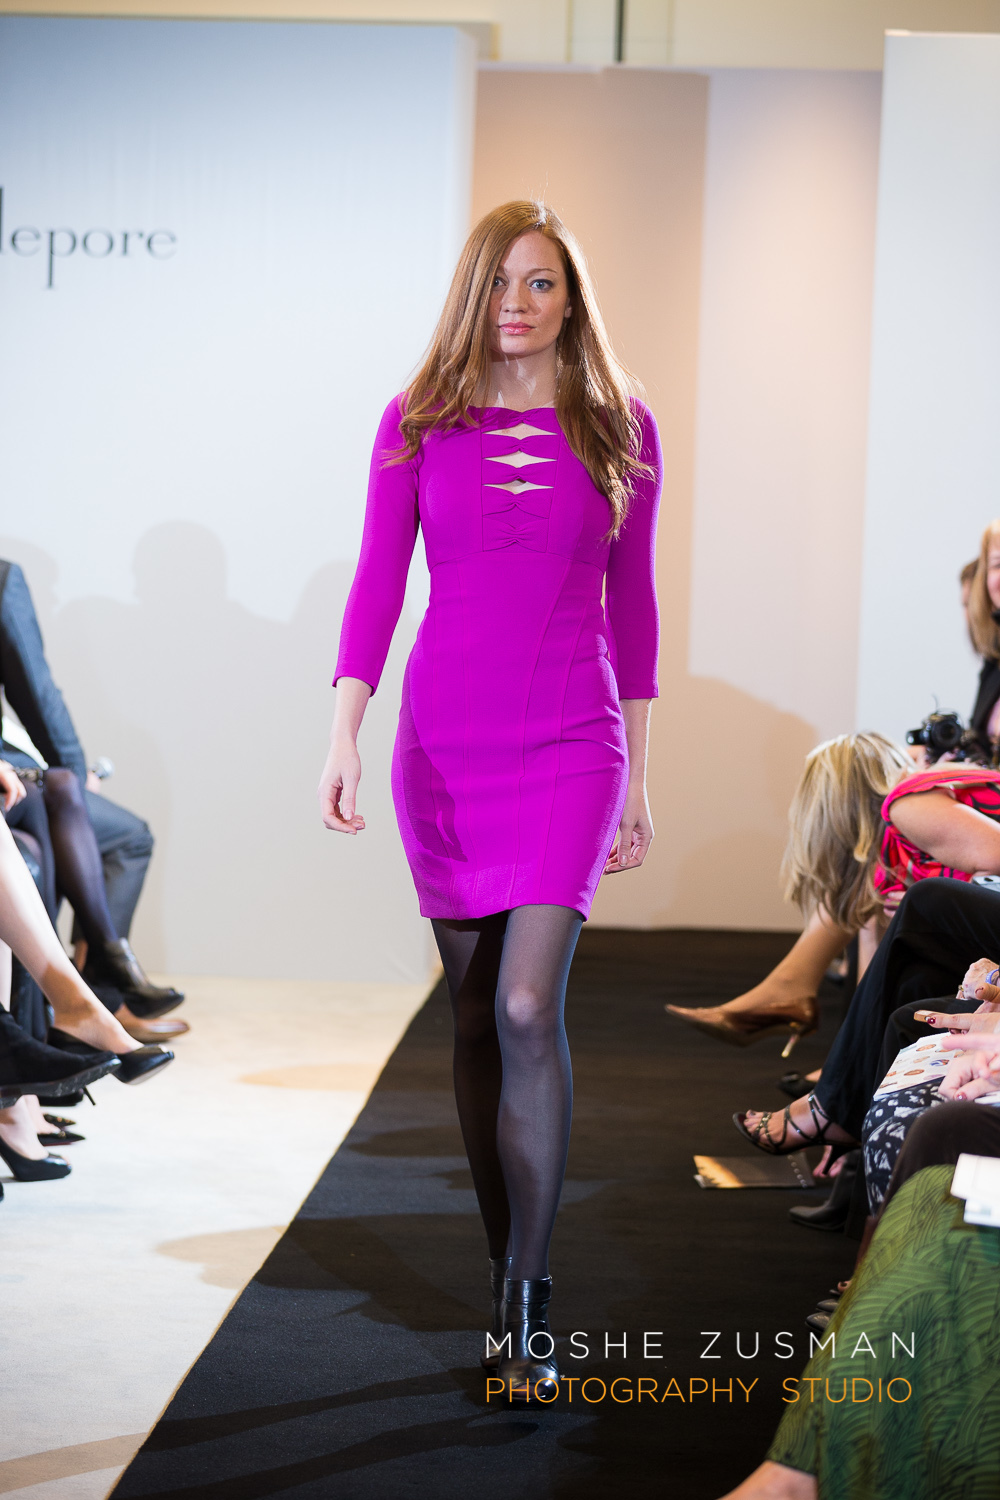 Nanette-Lepore-Saks-Fifth-Avenue-Fashion-Show-Moshe-Zusman-Photography-17.jpg